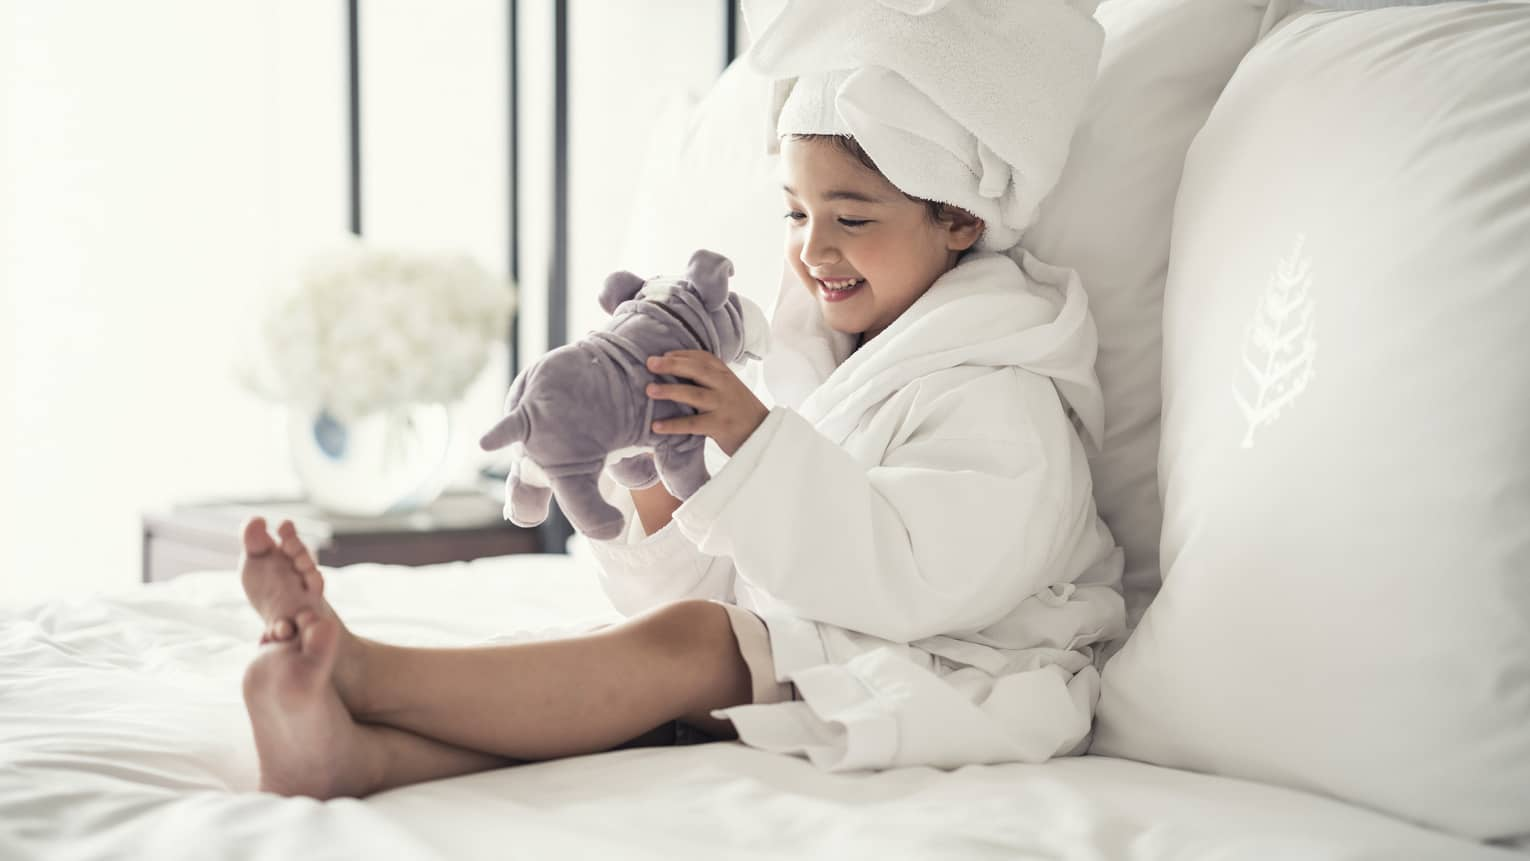 Young girl wearing white bathrobe, towel around head plays with stuffed dog on bed